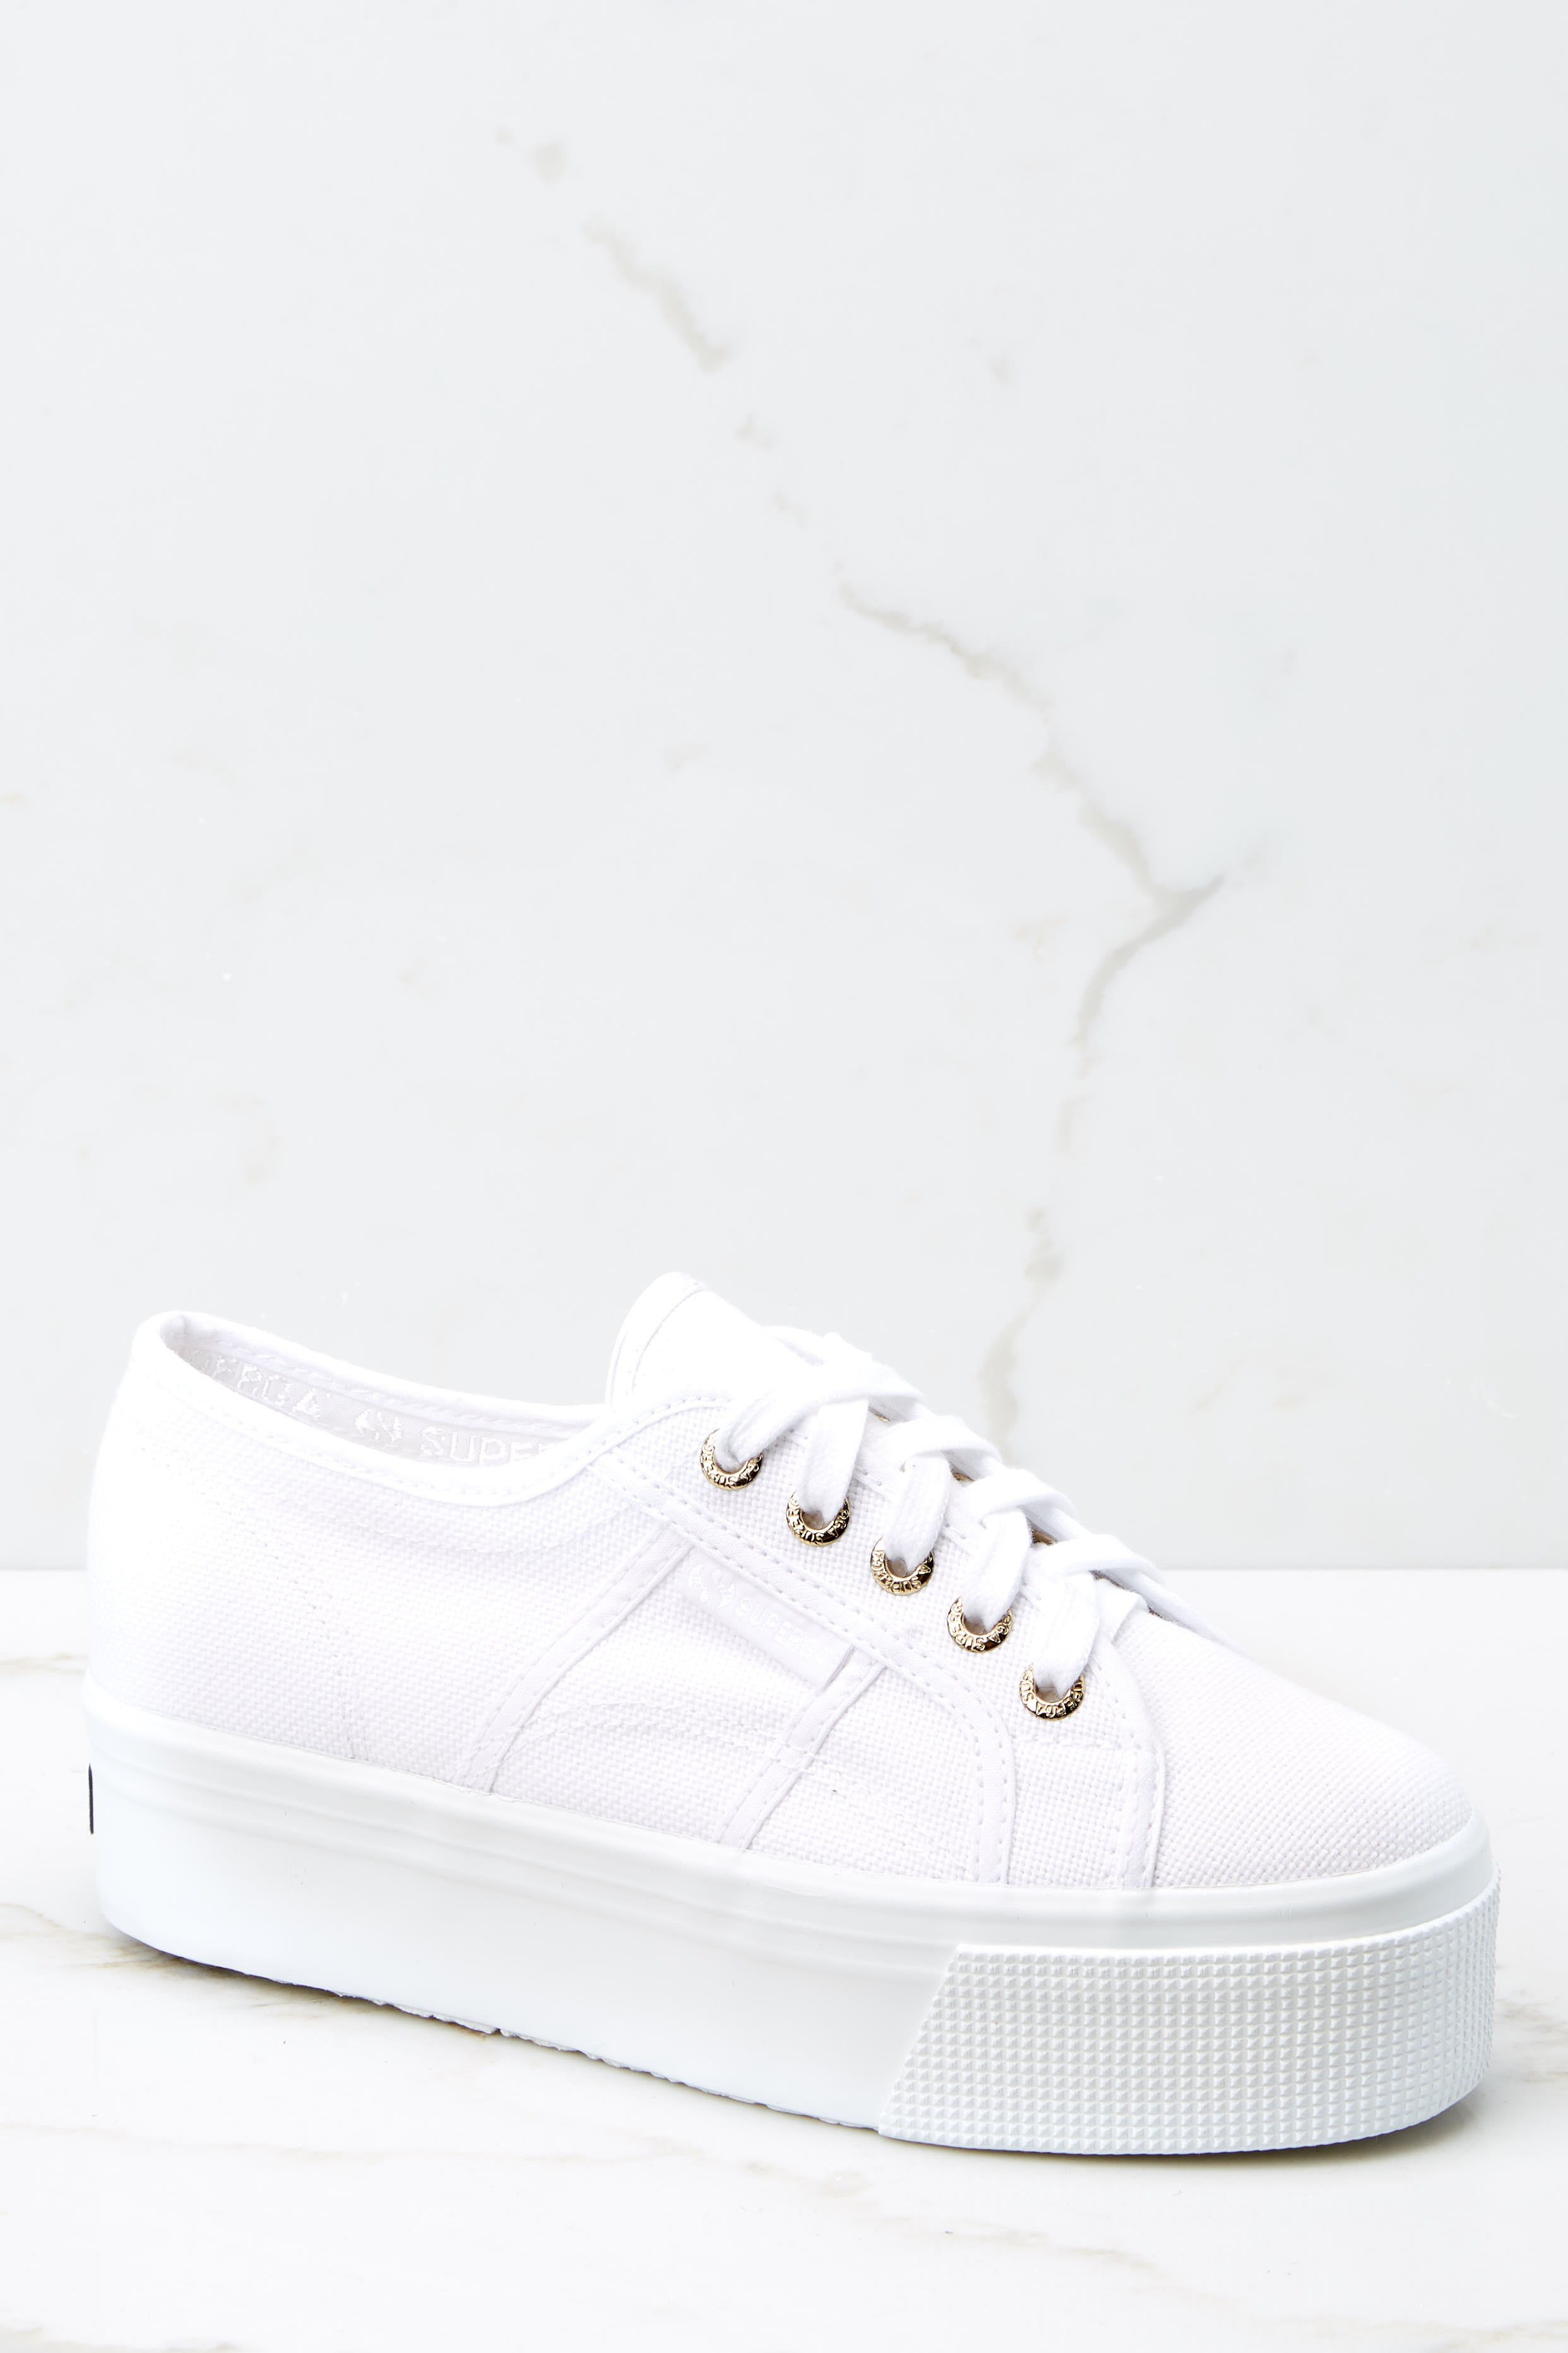 2 2790 Acot White And Gold Platform Sneakers at reddress.com